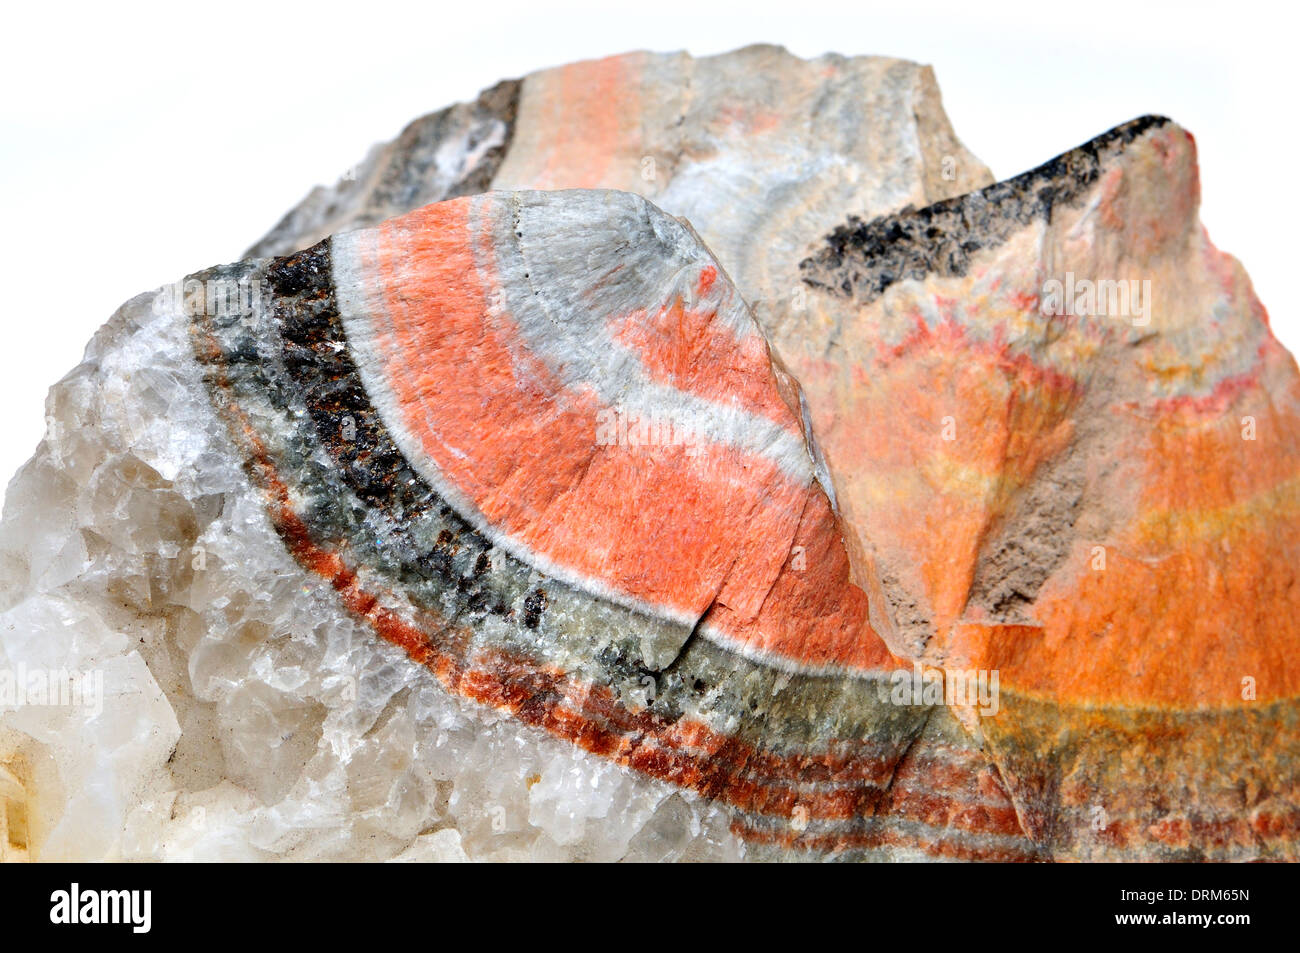 Banded Barian Celestine (strontium sulphate) sphalerite and calcite crystals - Stock Image